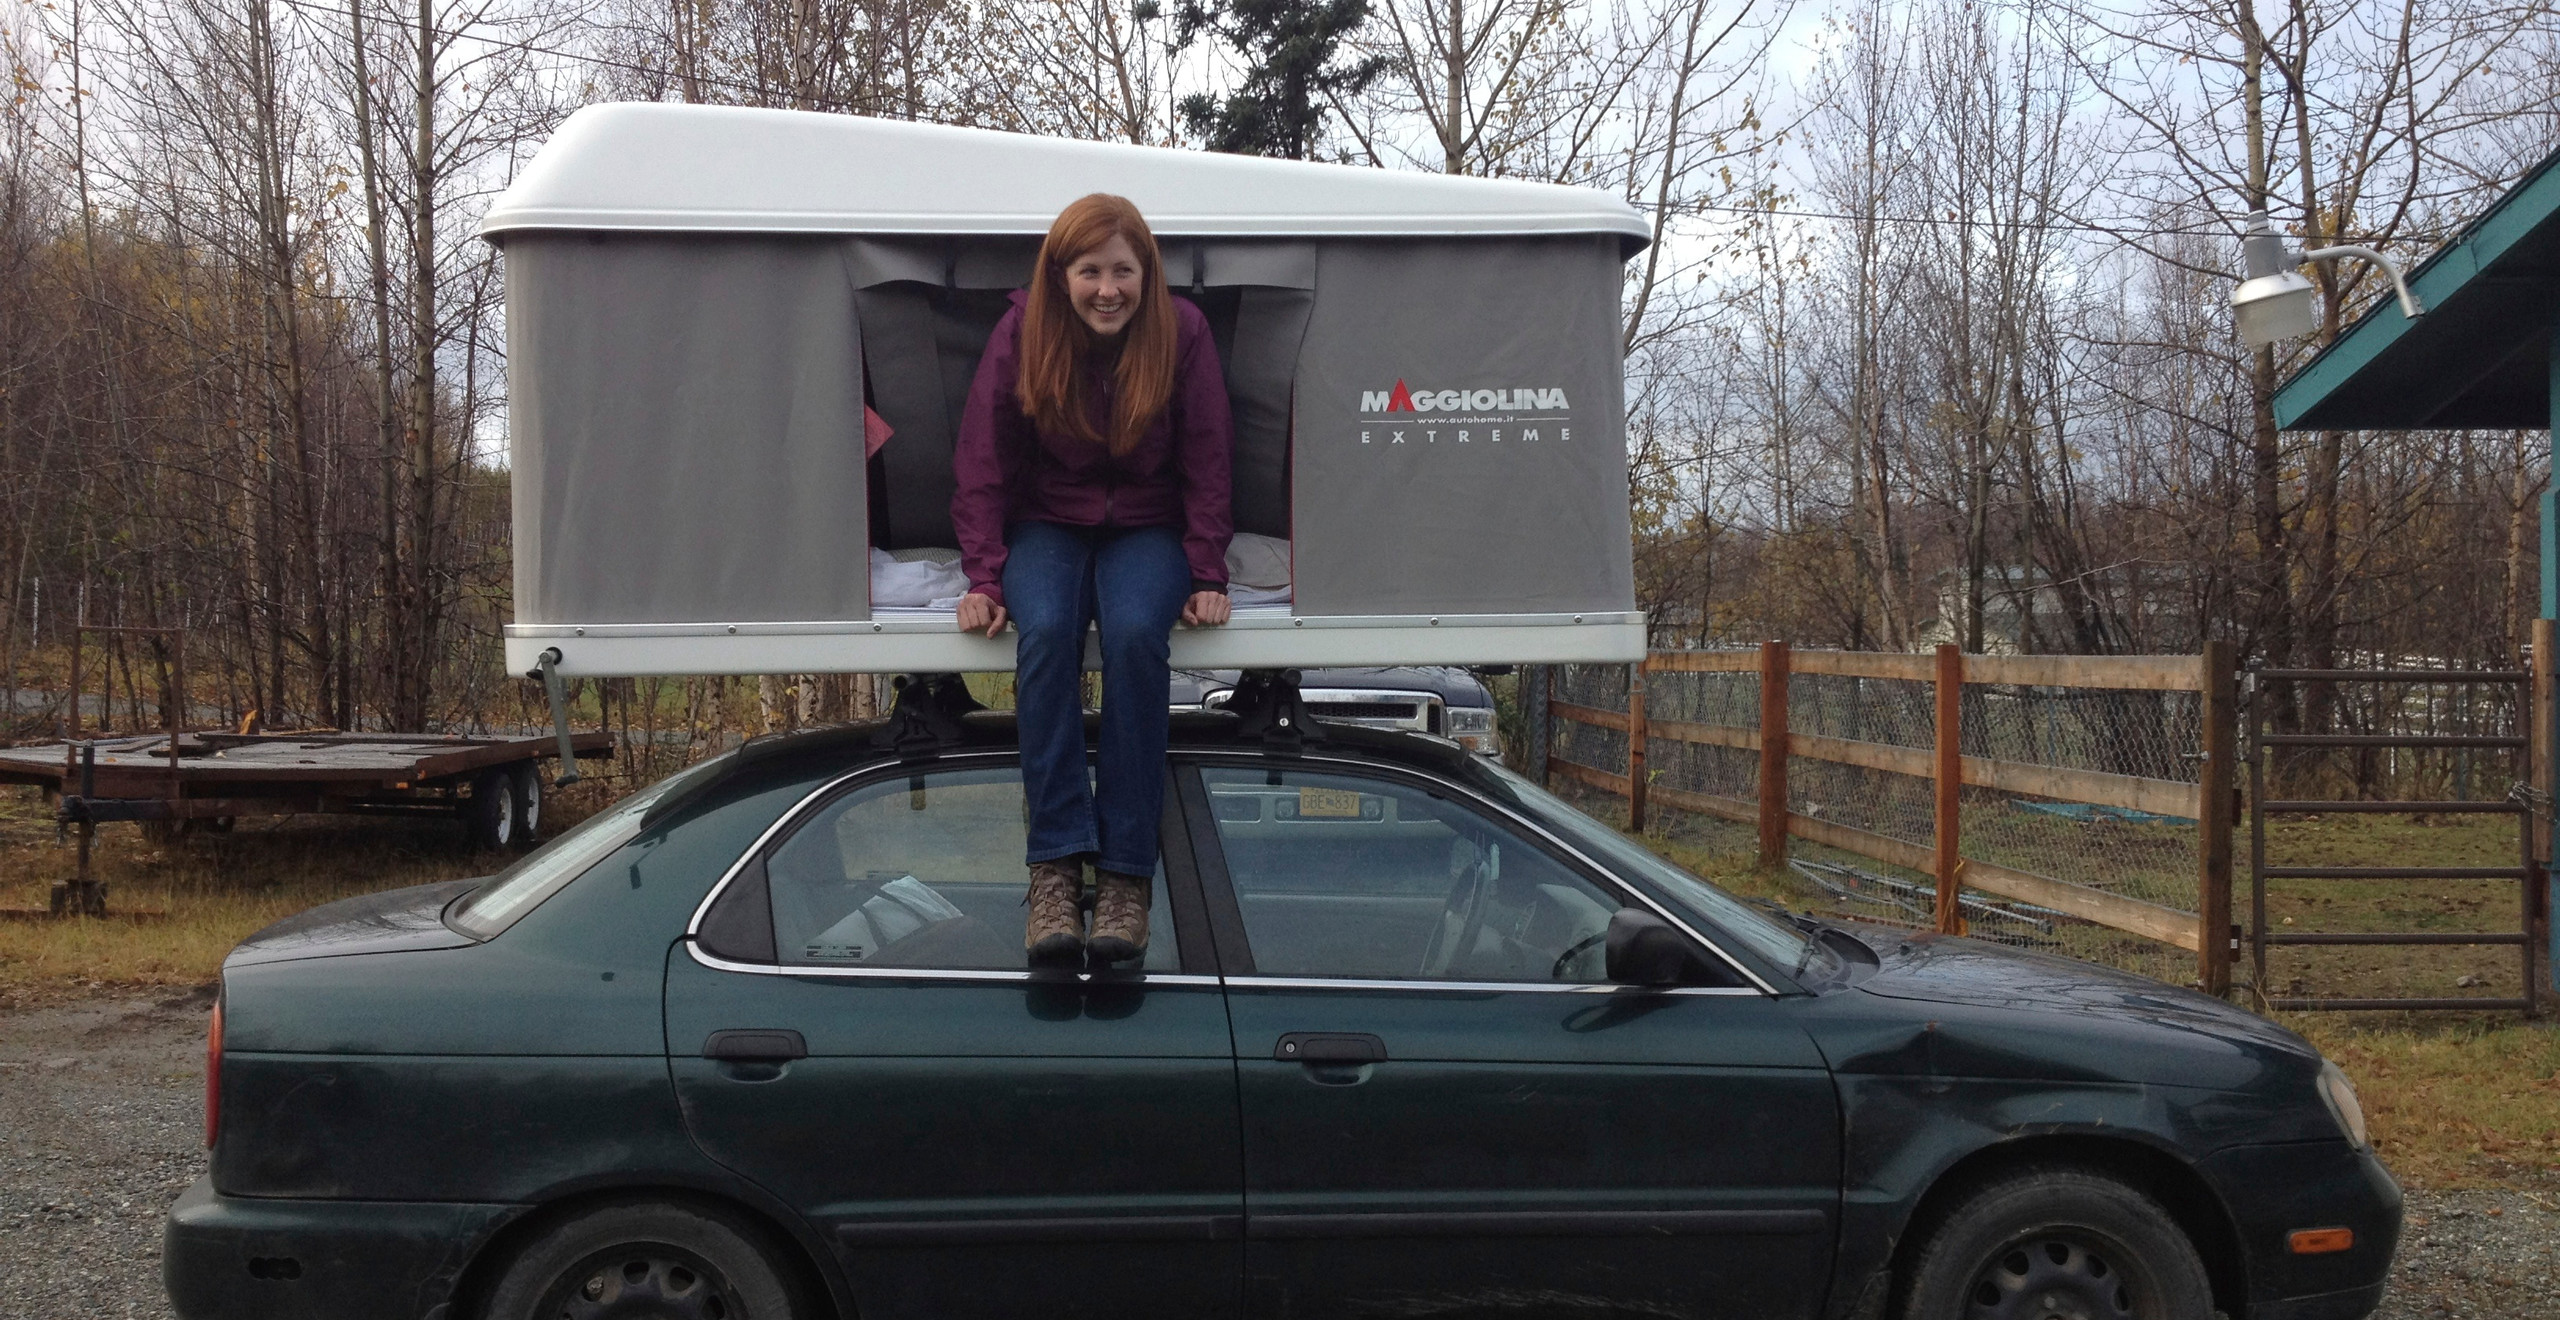 it arrived before the truck was finished so we put it on my little car to try it out